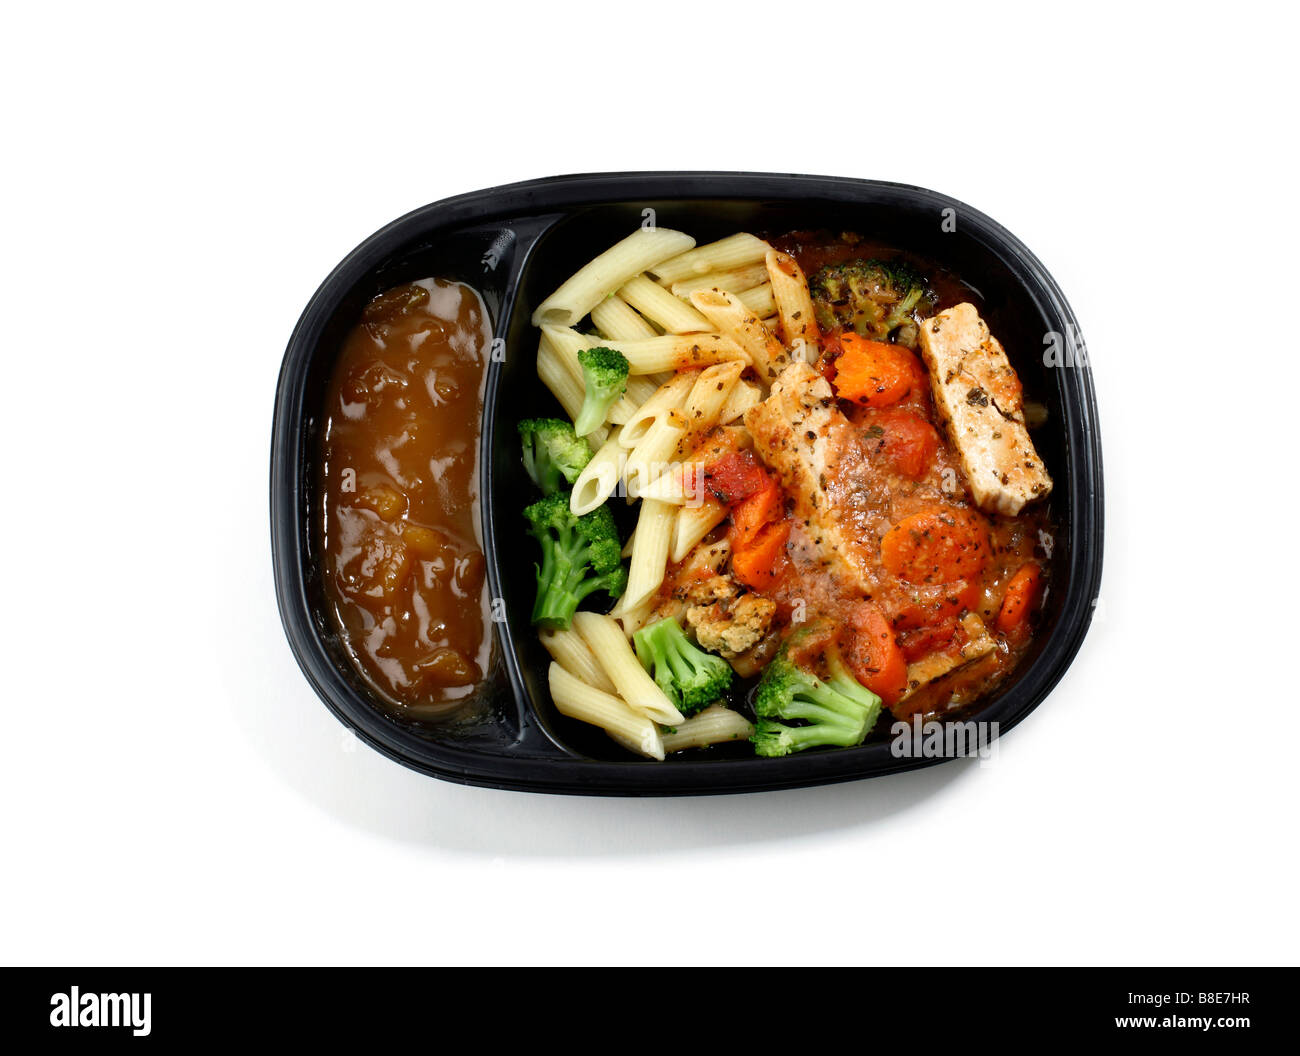 Cooked frozen chicken and pasta Dinner - Stock Image